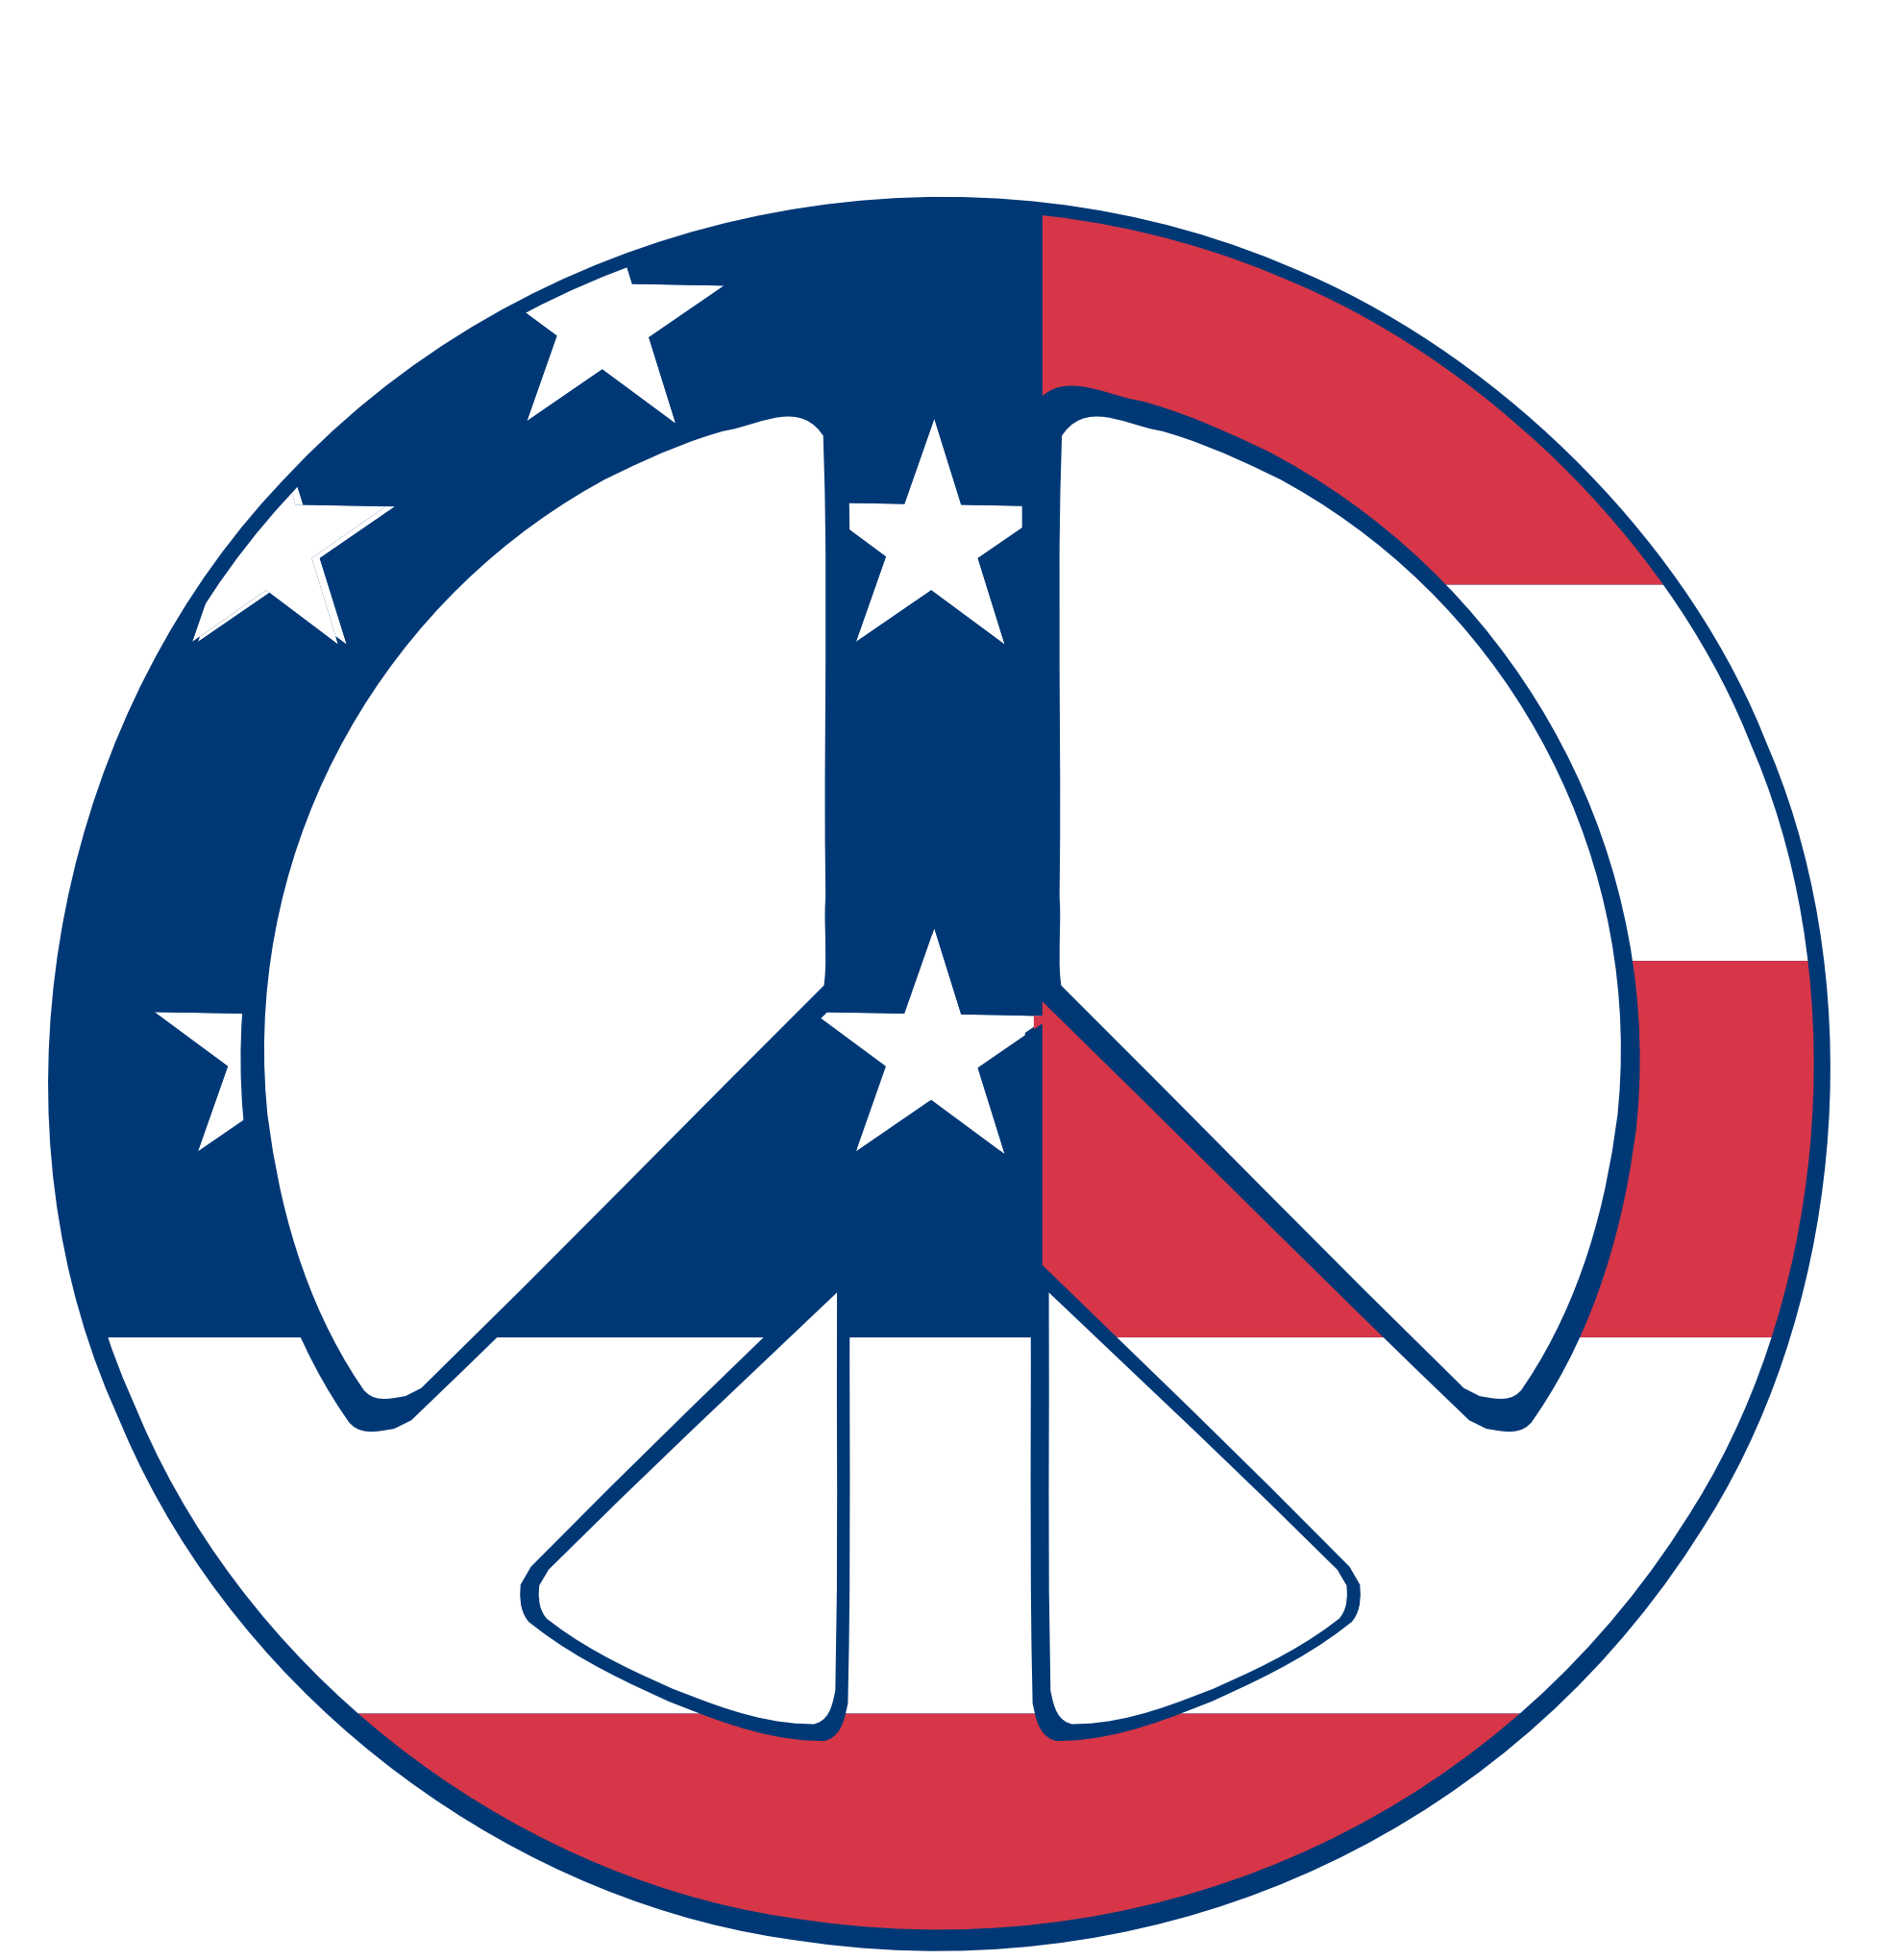 Colorful Peace Sign Clipart Free Download Best Colorful Peace Sign